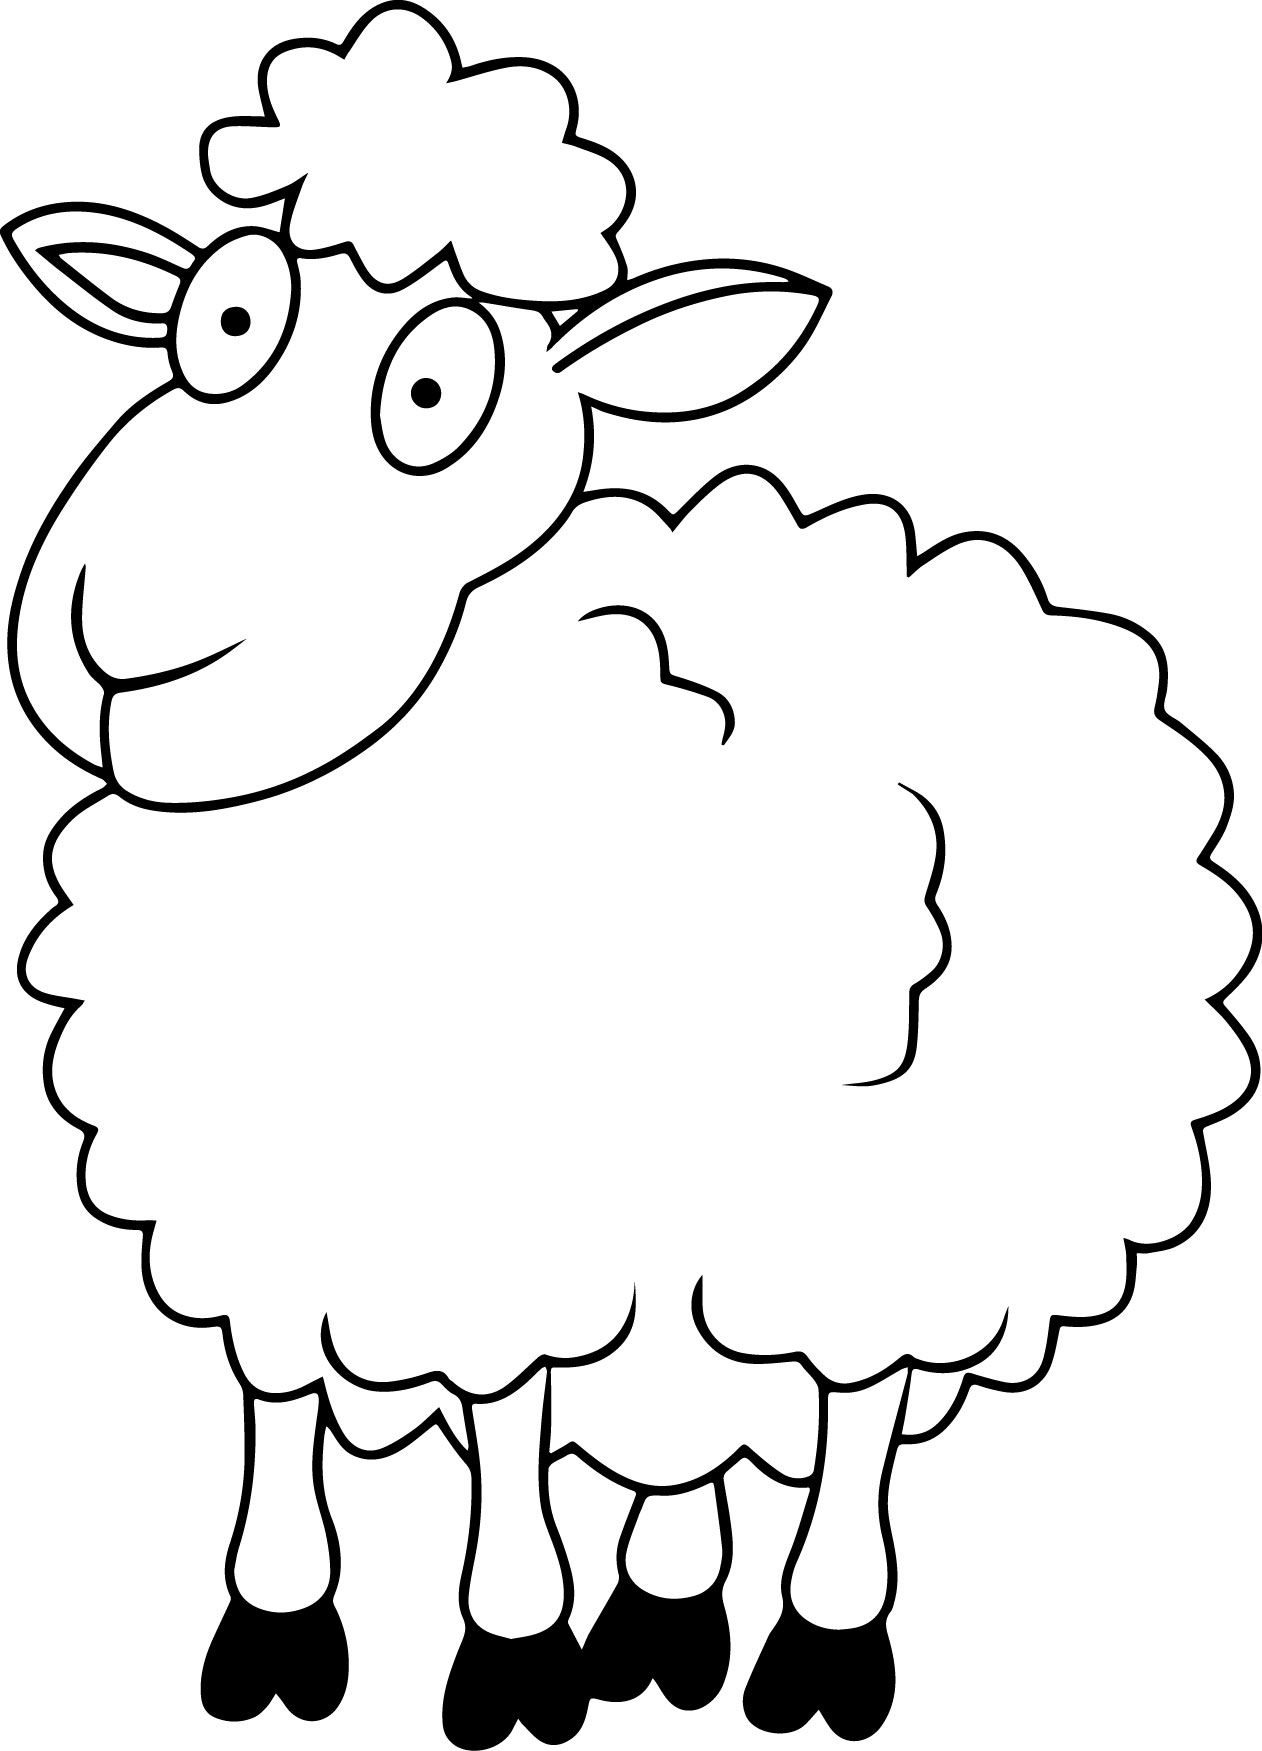 lamb pictures to colour sheep outline coloring page coloring home to pictures colour lamb